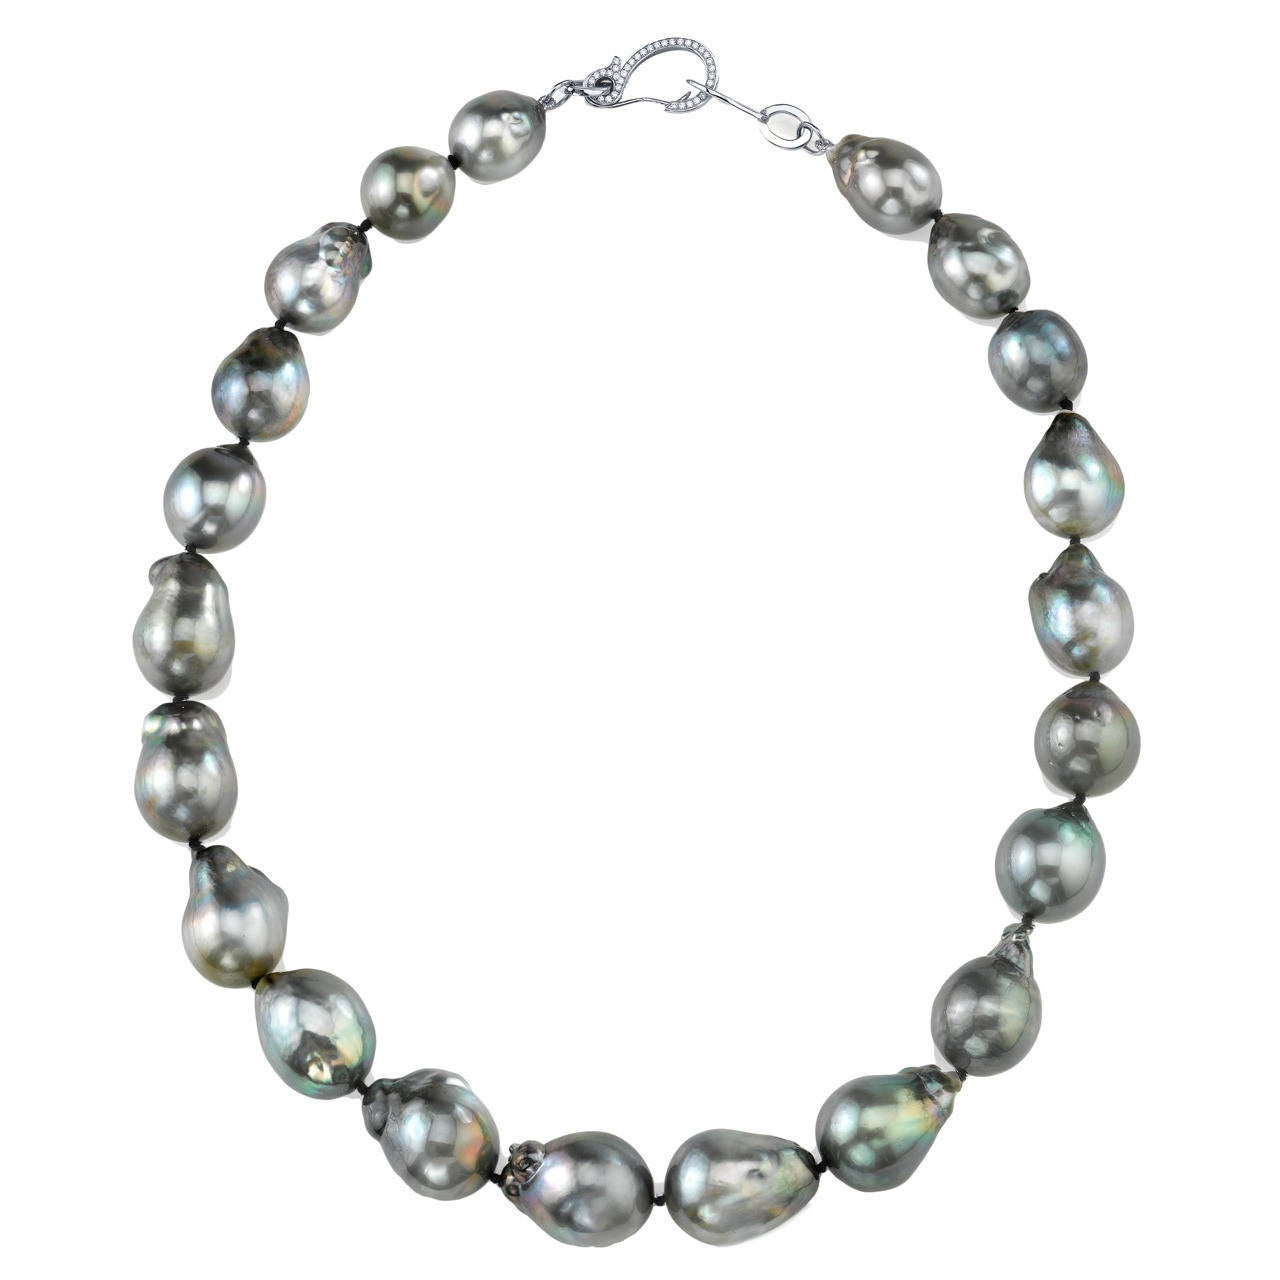 tahitian baroque pearl necklace at 1stdibs